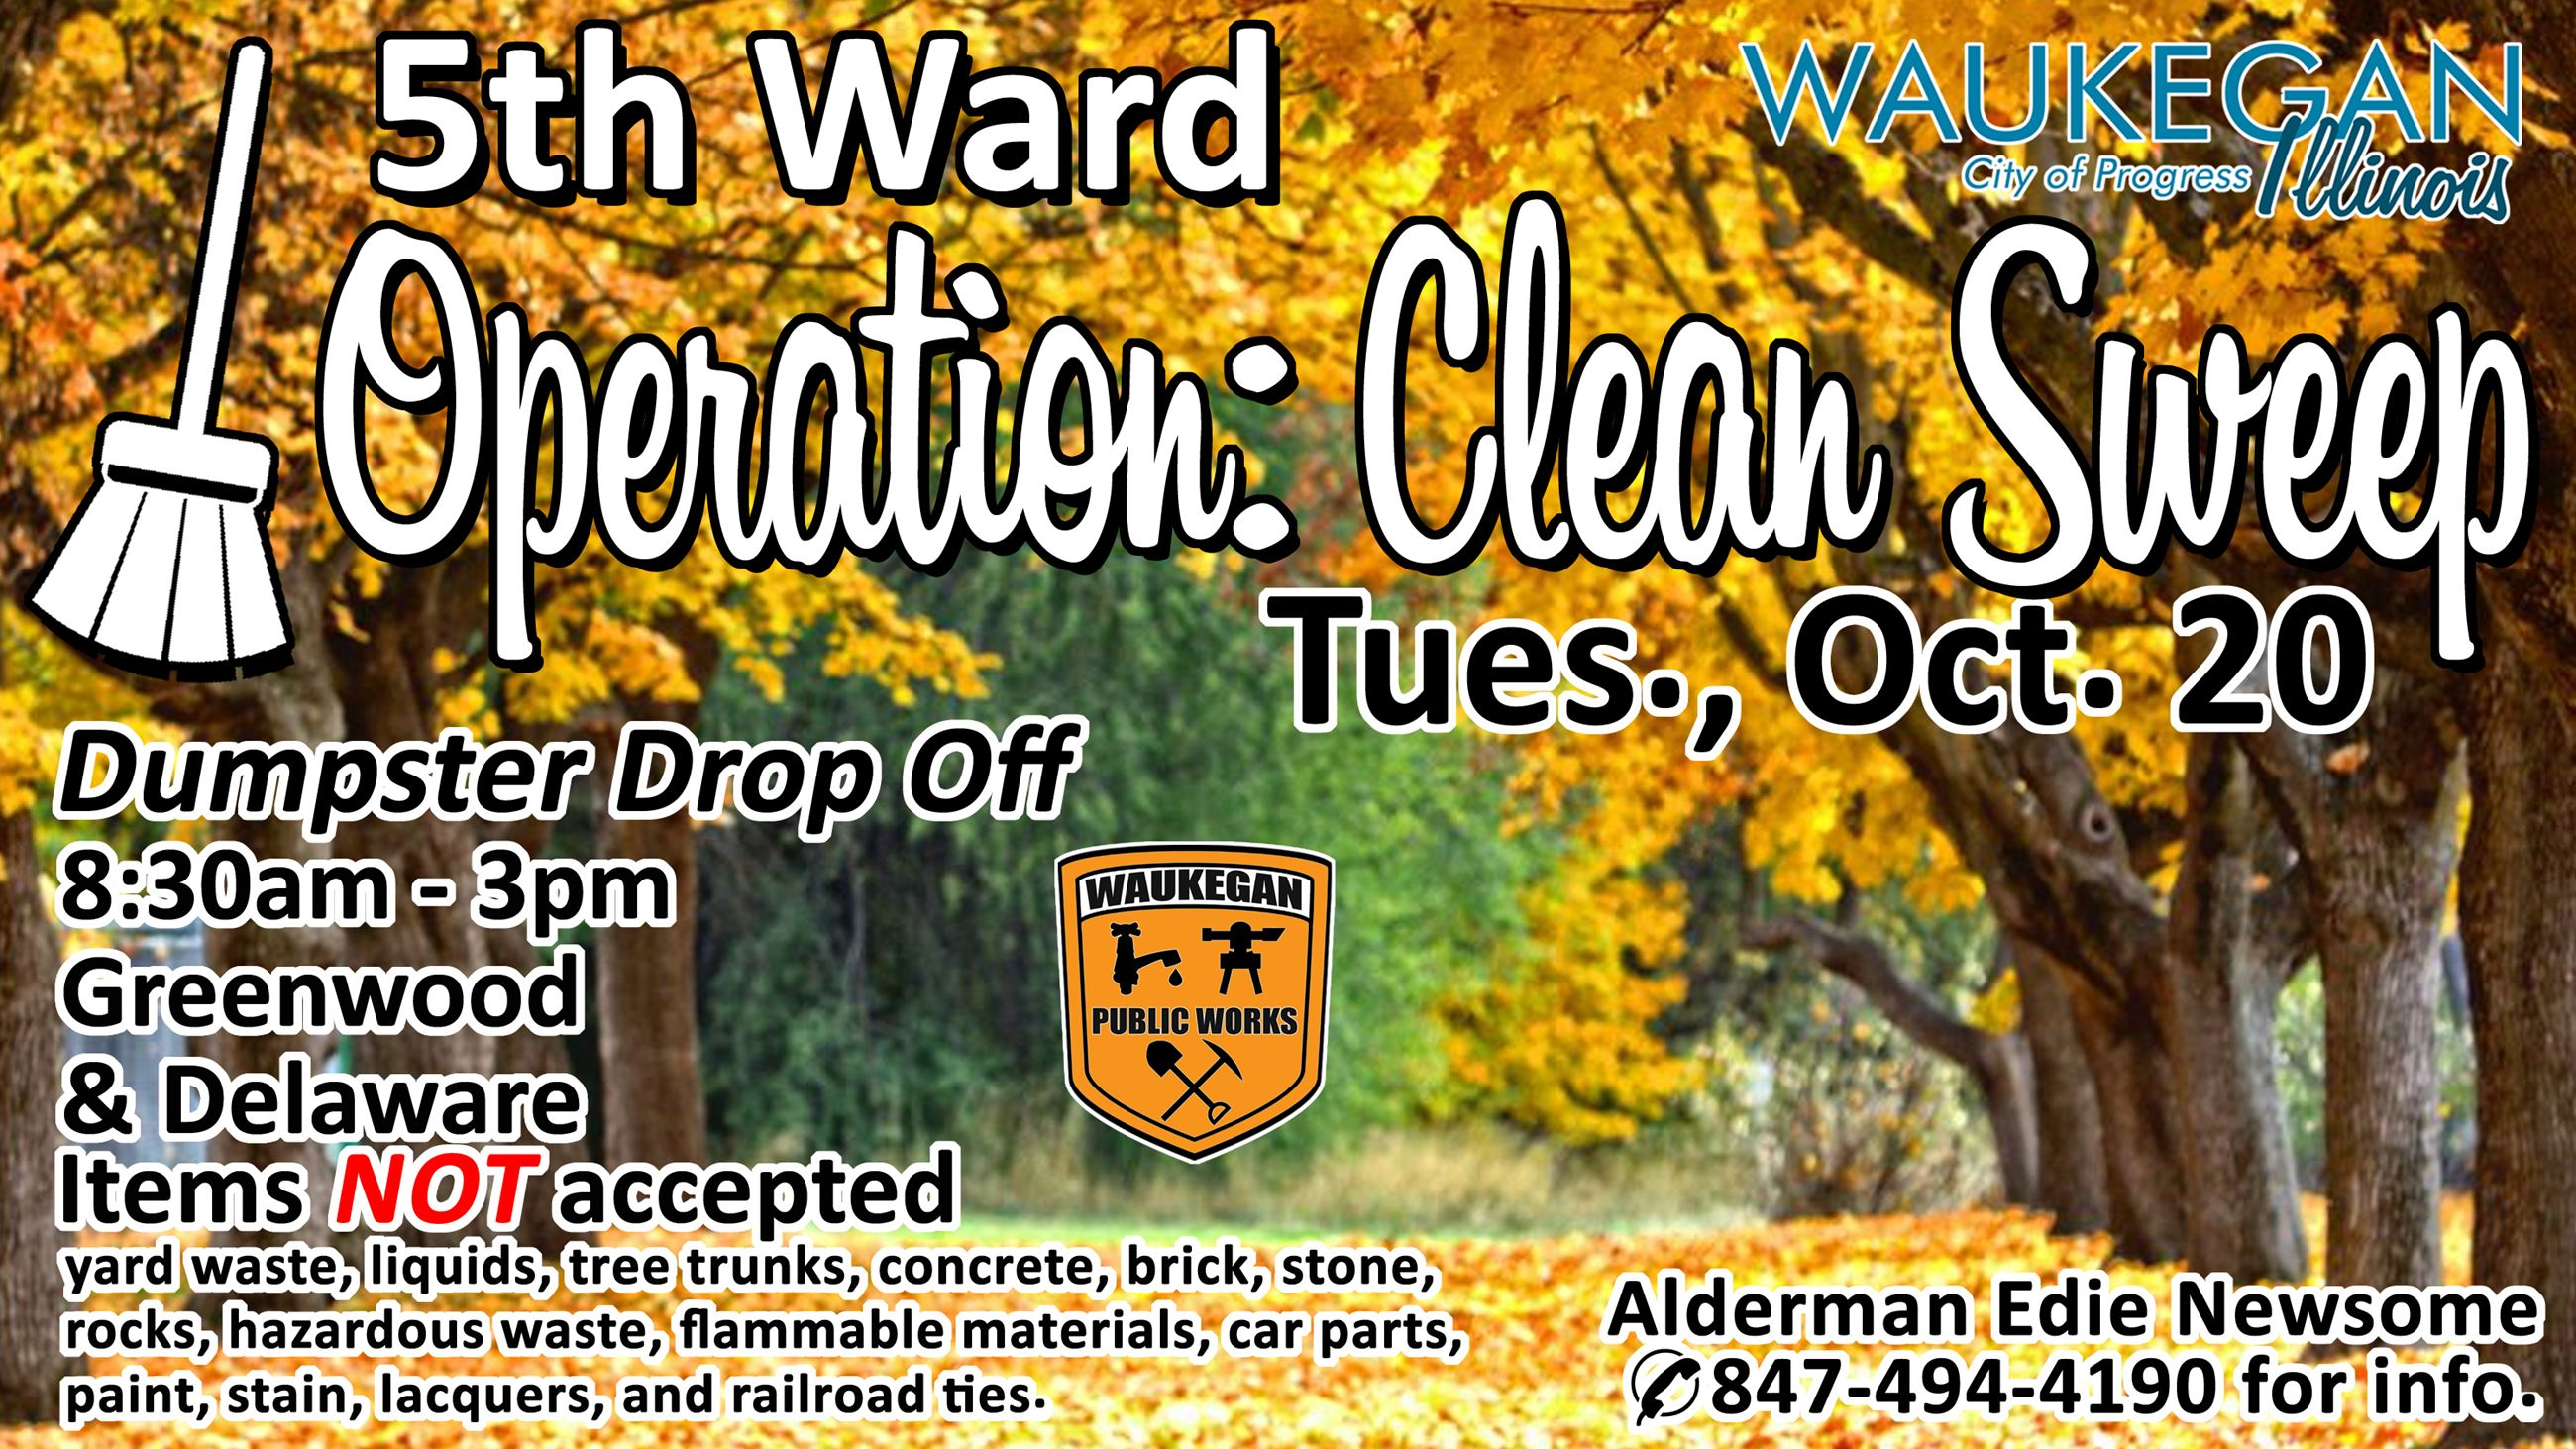 5th ward clean sweep october 20 2020